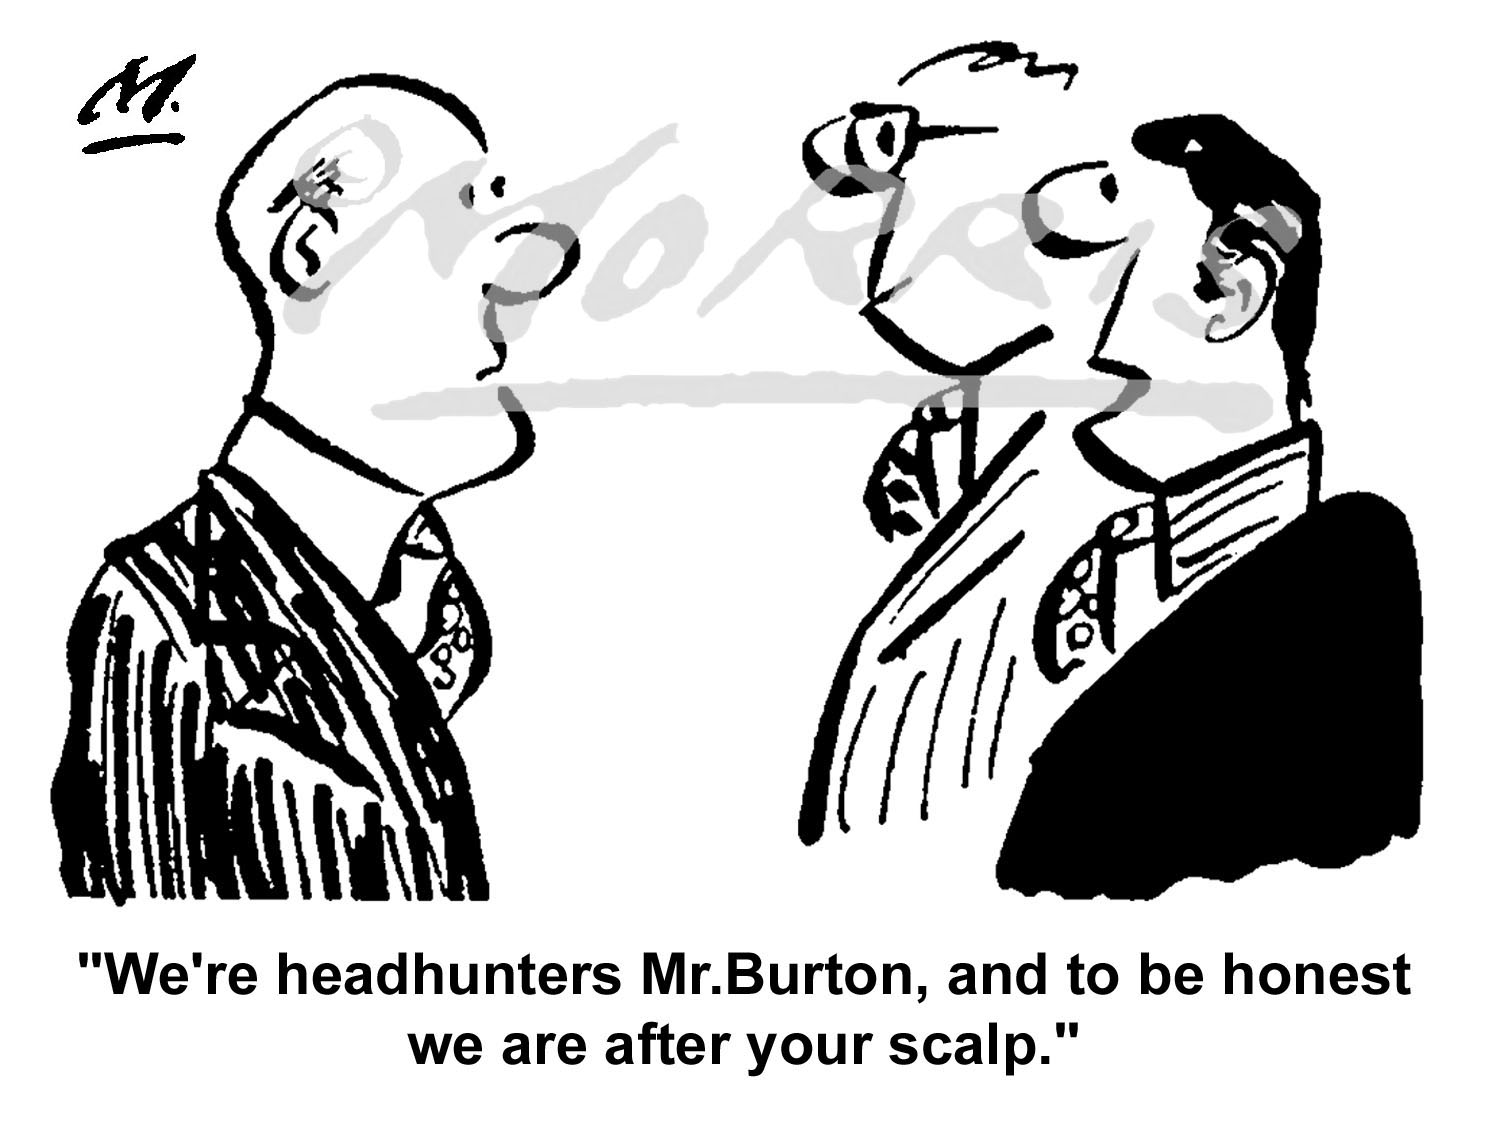 Headhunter comic business cartoon Ref: 0429bw